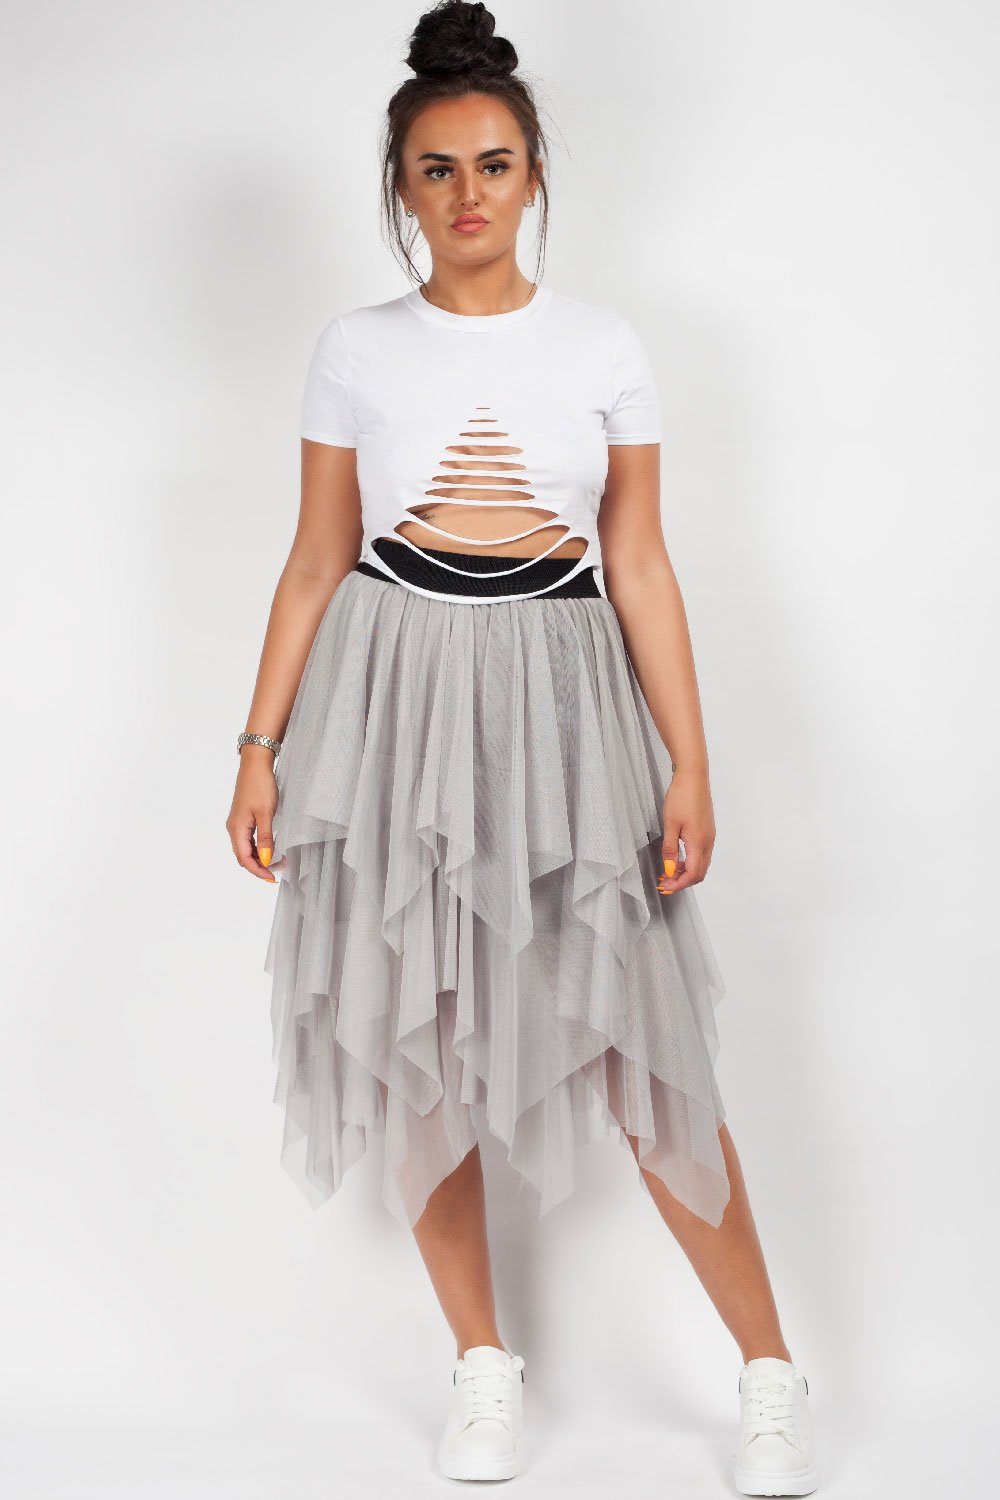 grey long tulle skirt styledup fashion